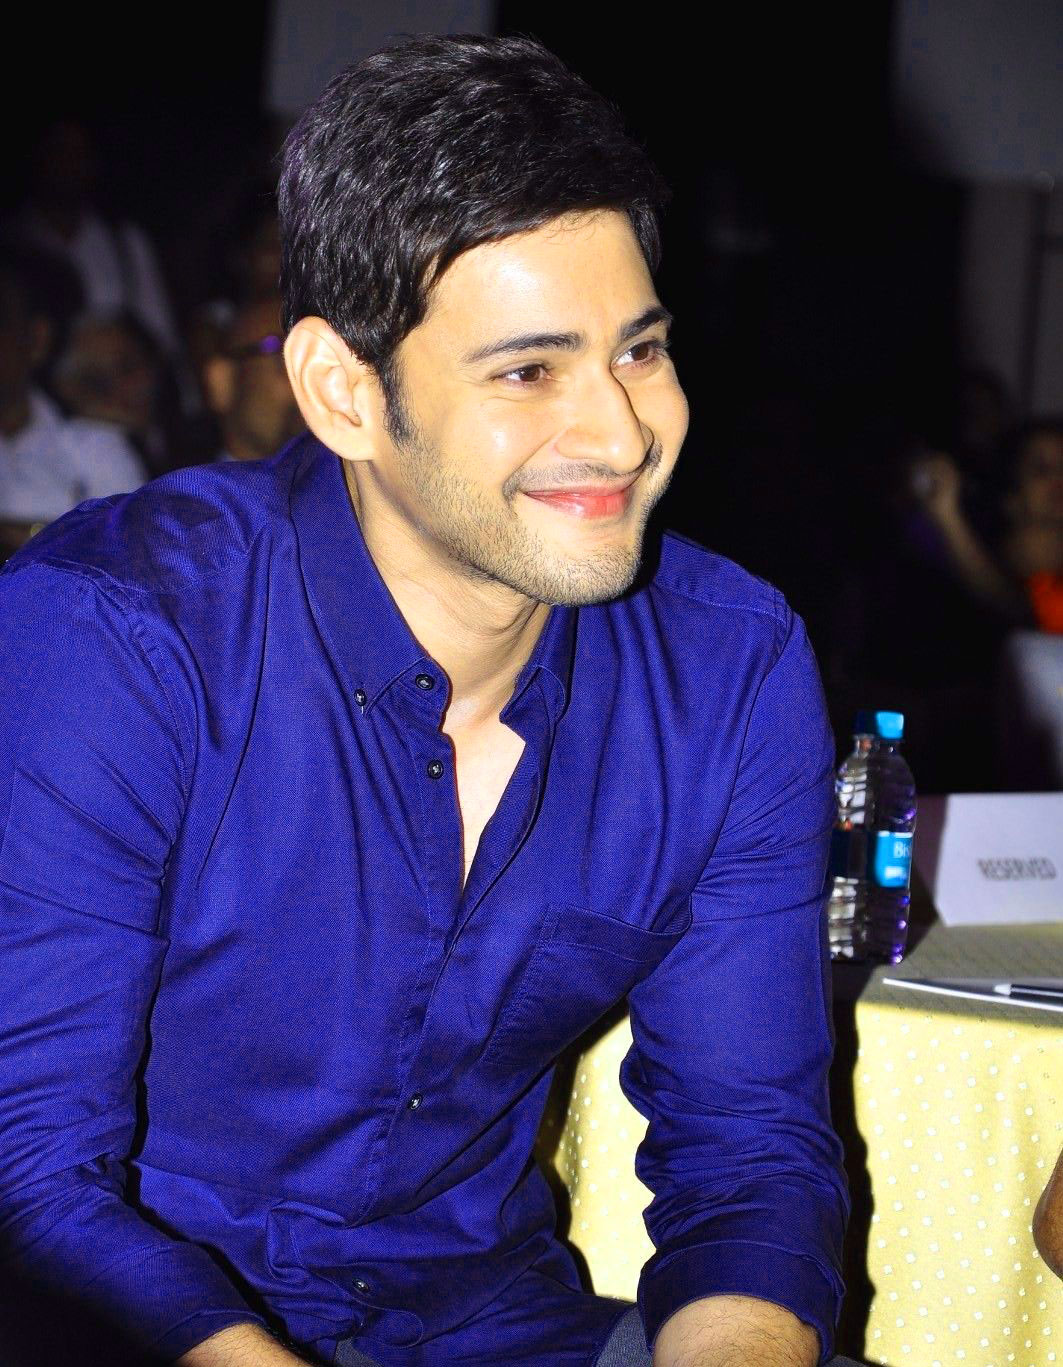 Mahesh Babu Images Wallpaper Photo Pictures Pics Free HD